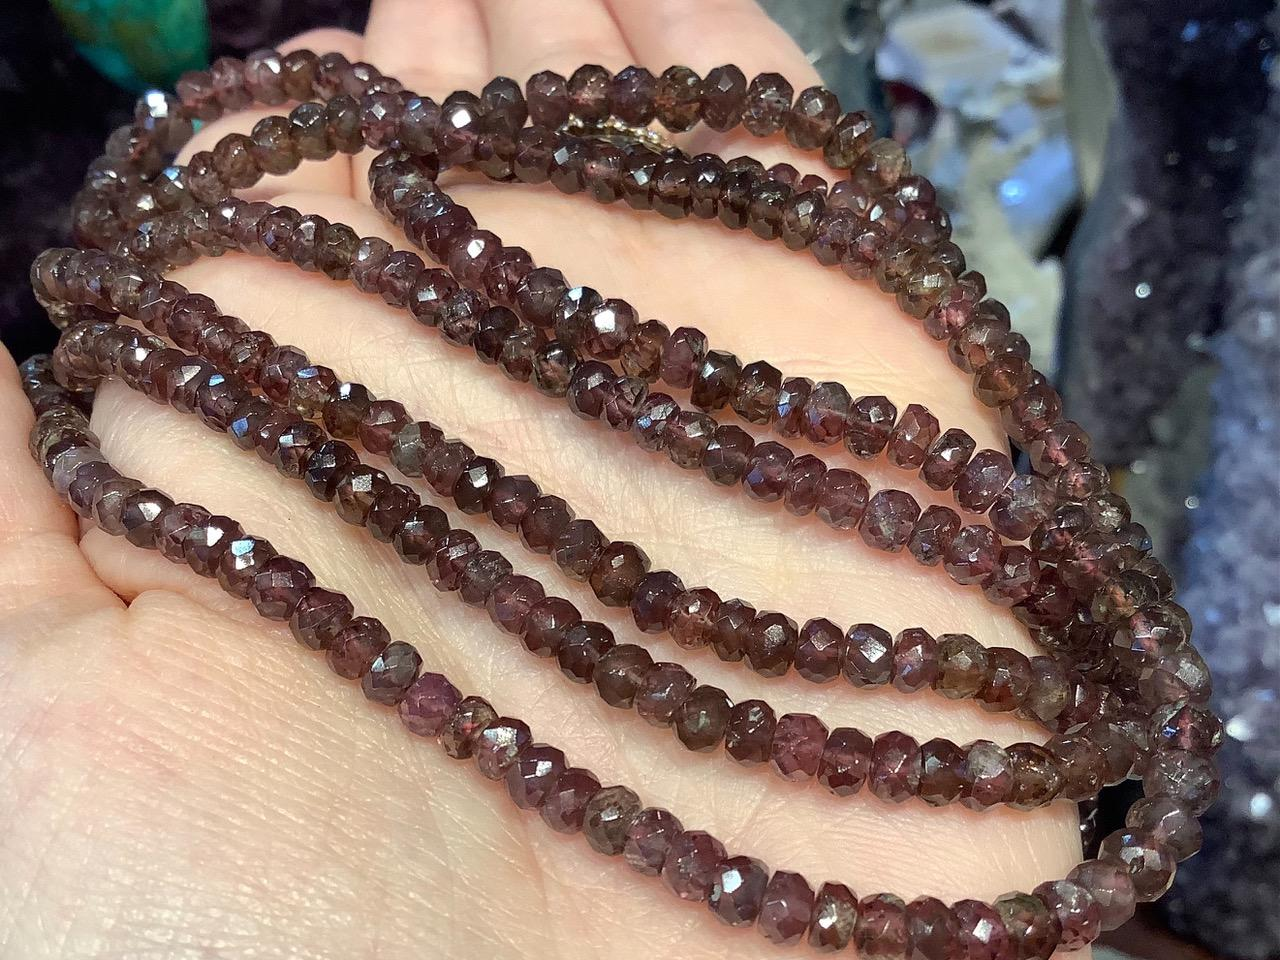 4-6mm Exquisite Natural Color Change Garnet Faceted Rondelles Beads